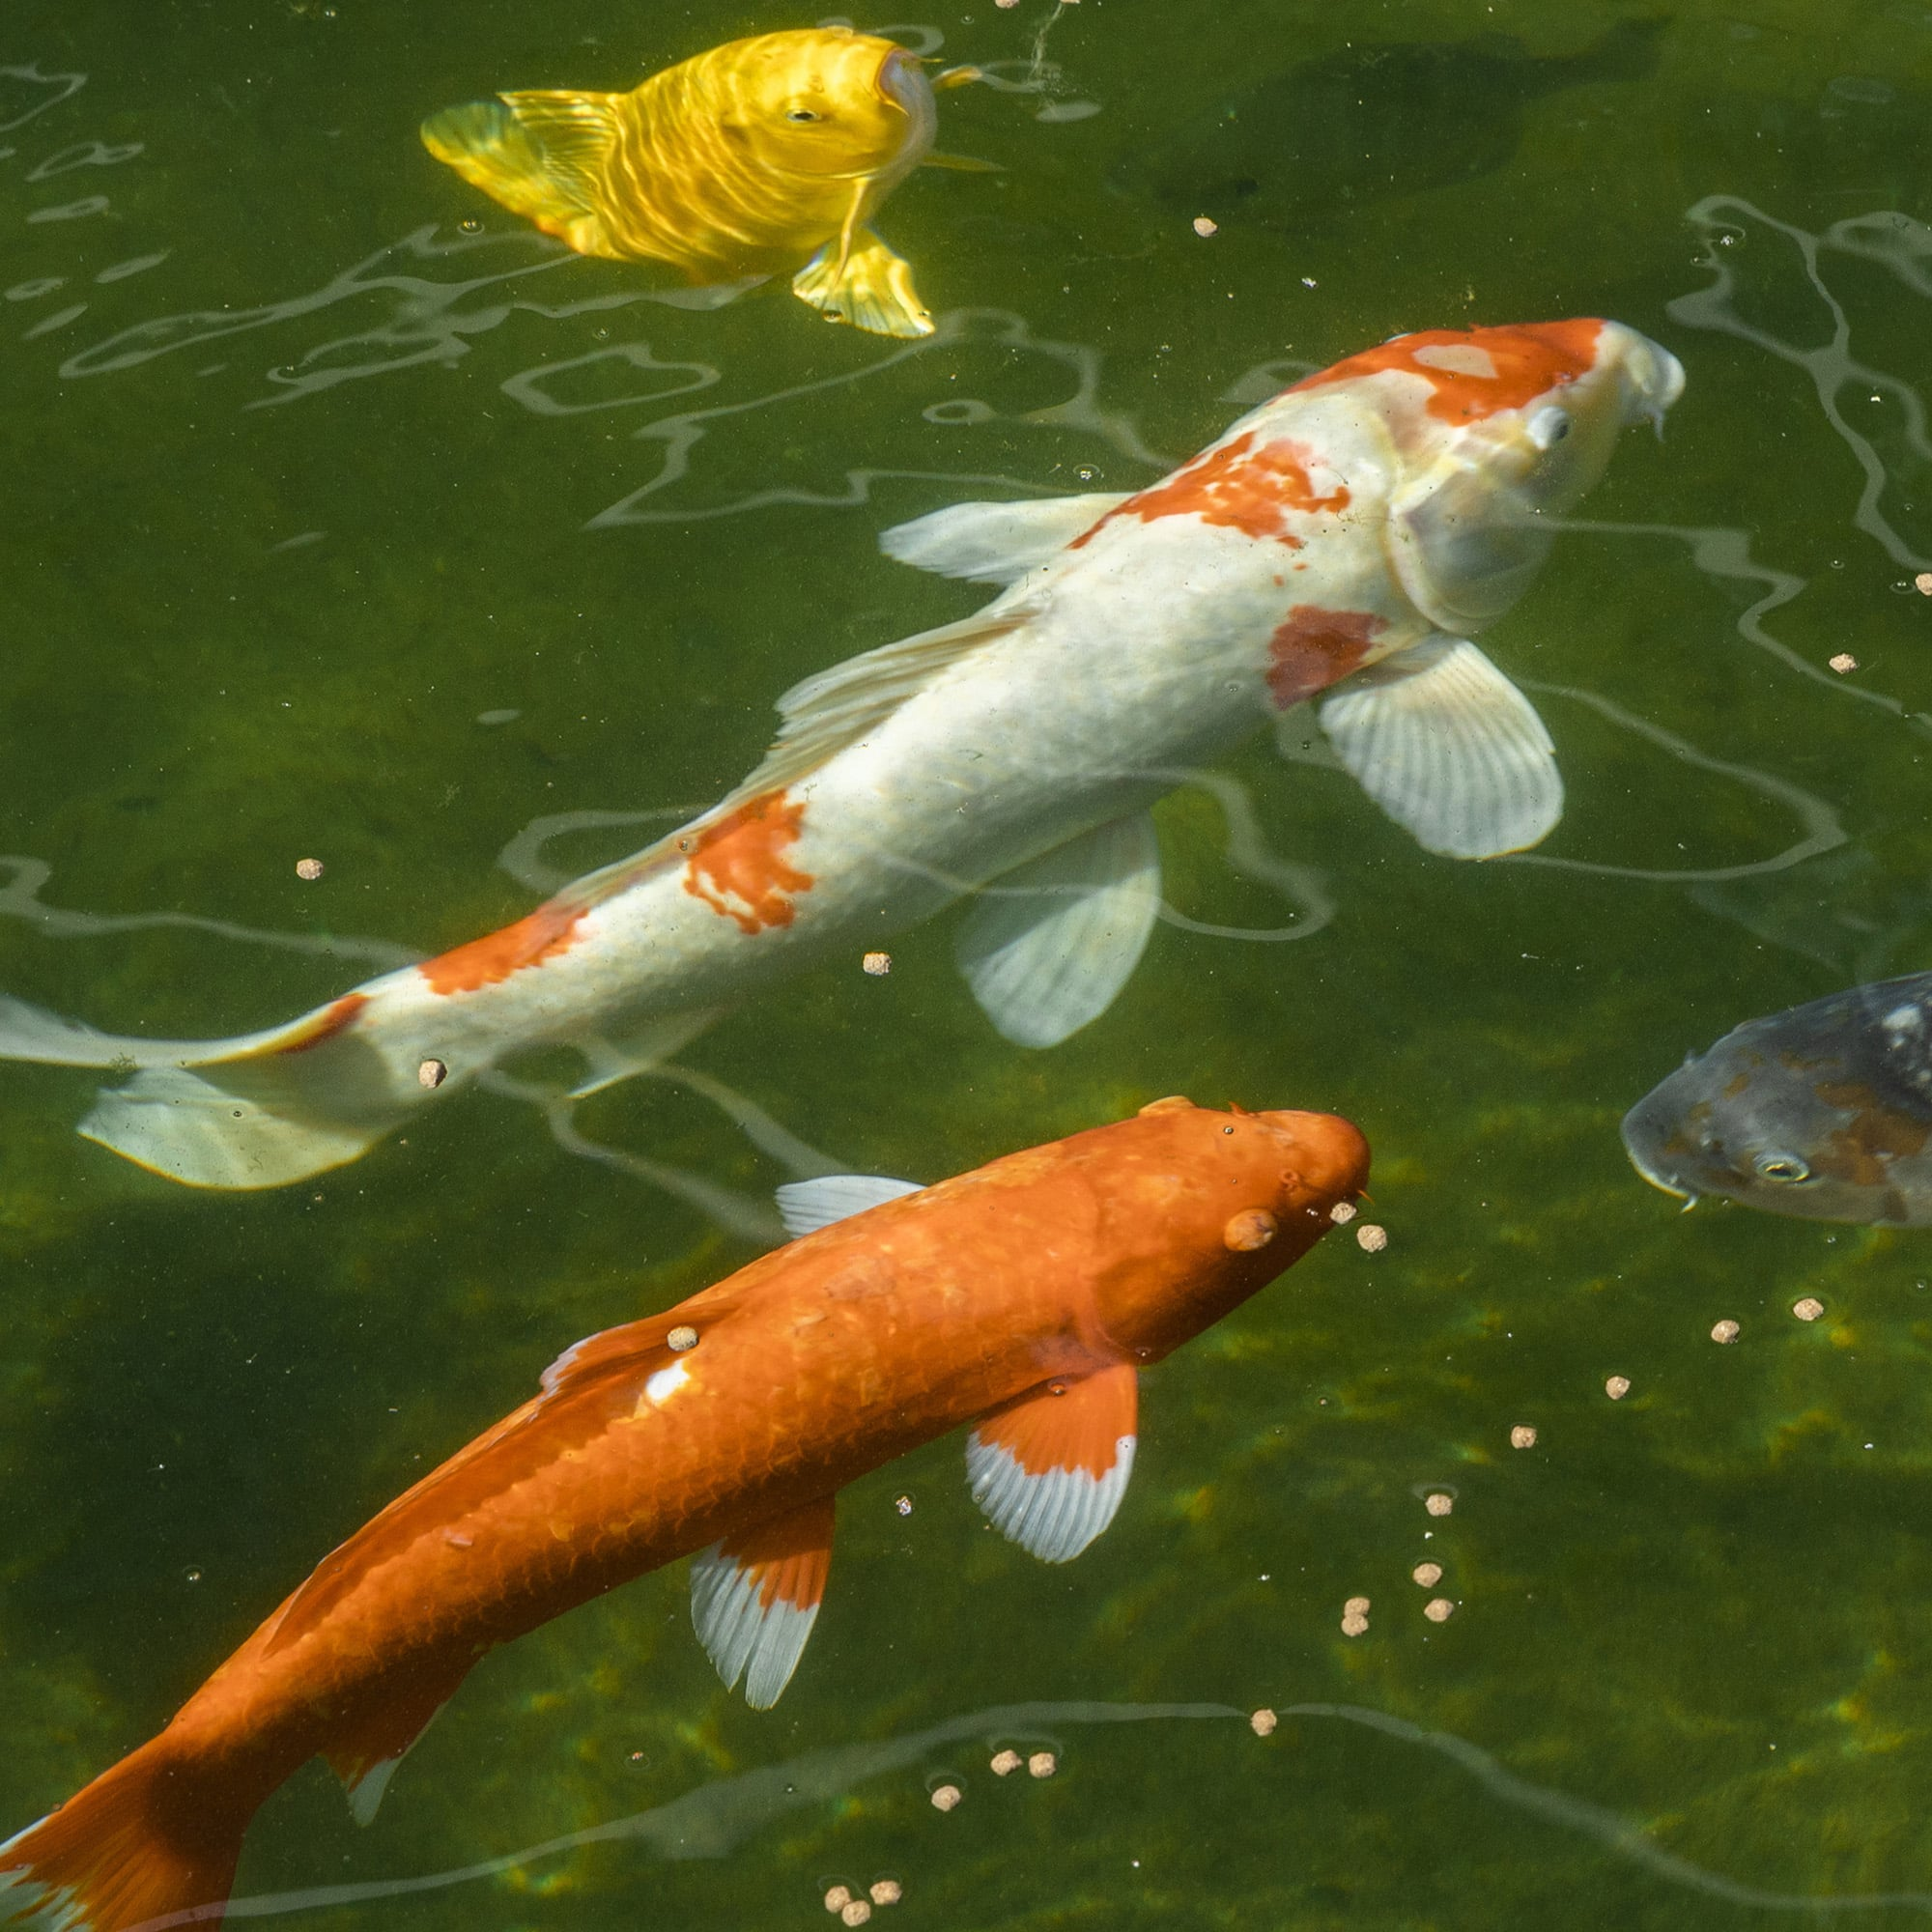 Best Of Caretakers Of The Koi Fish The Woodlands